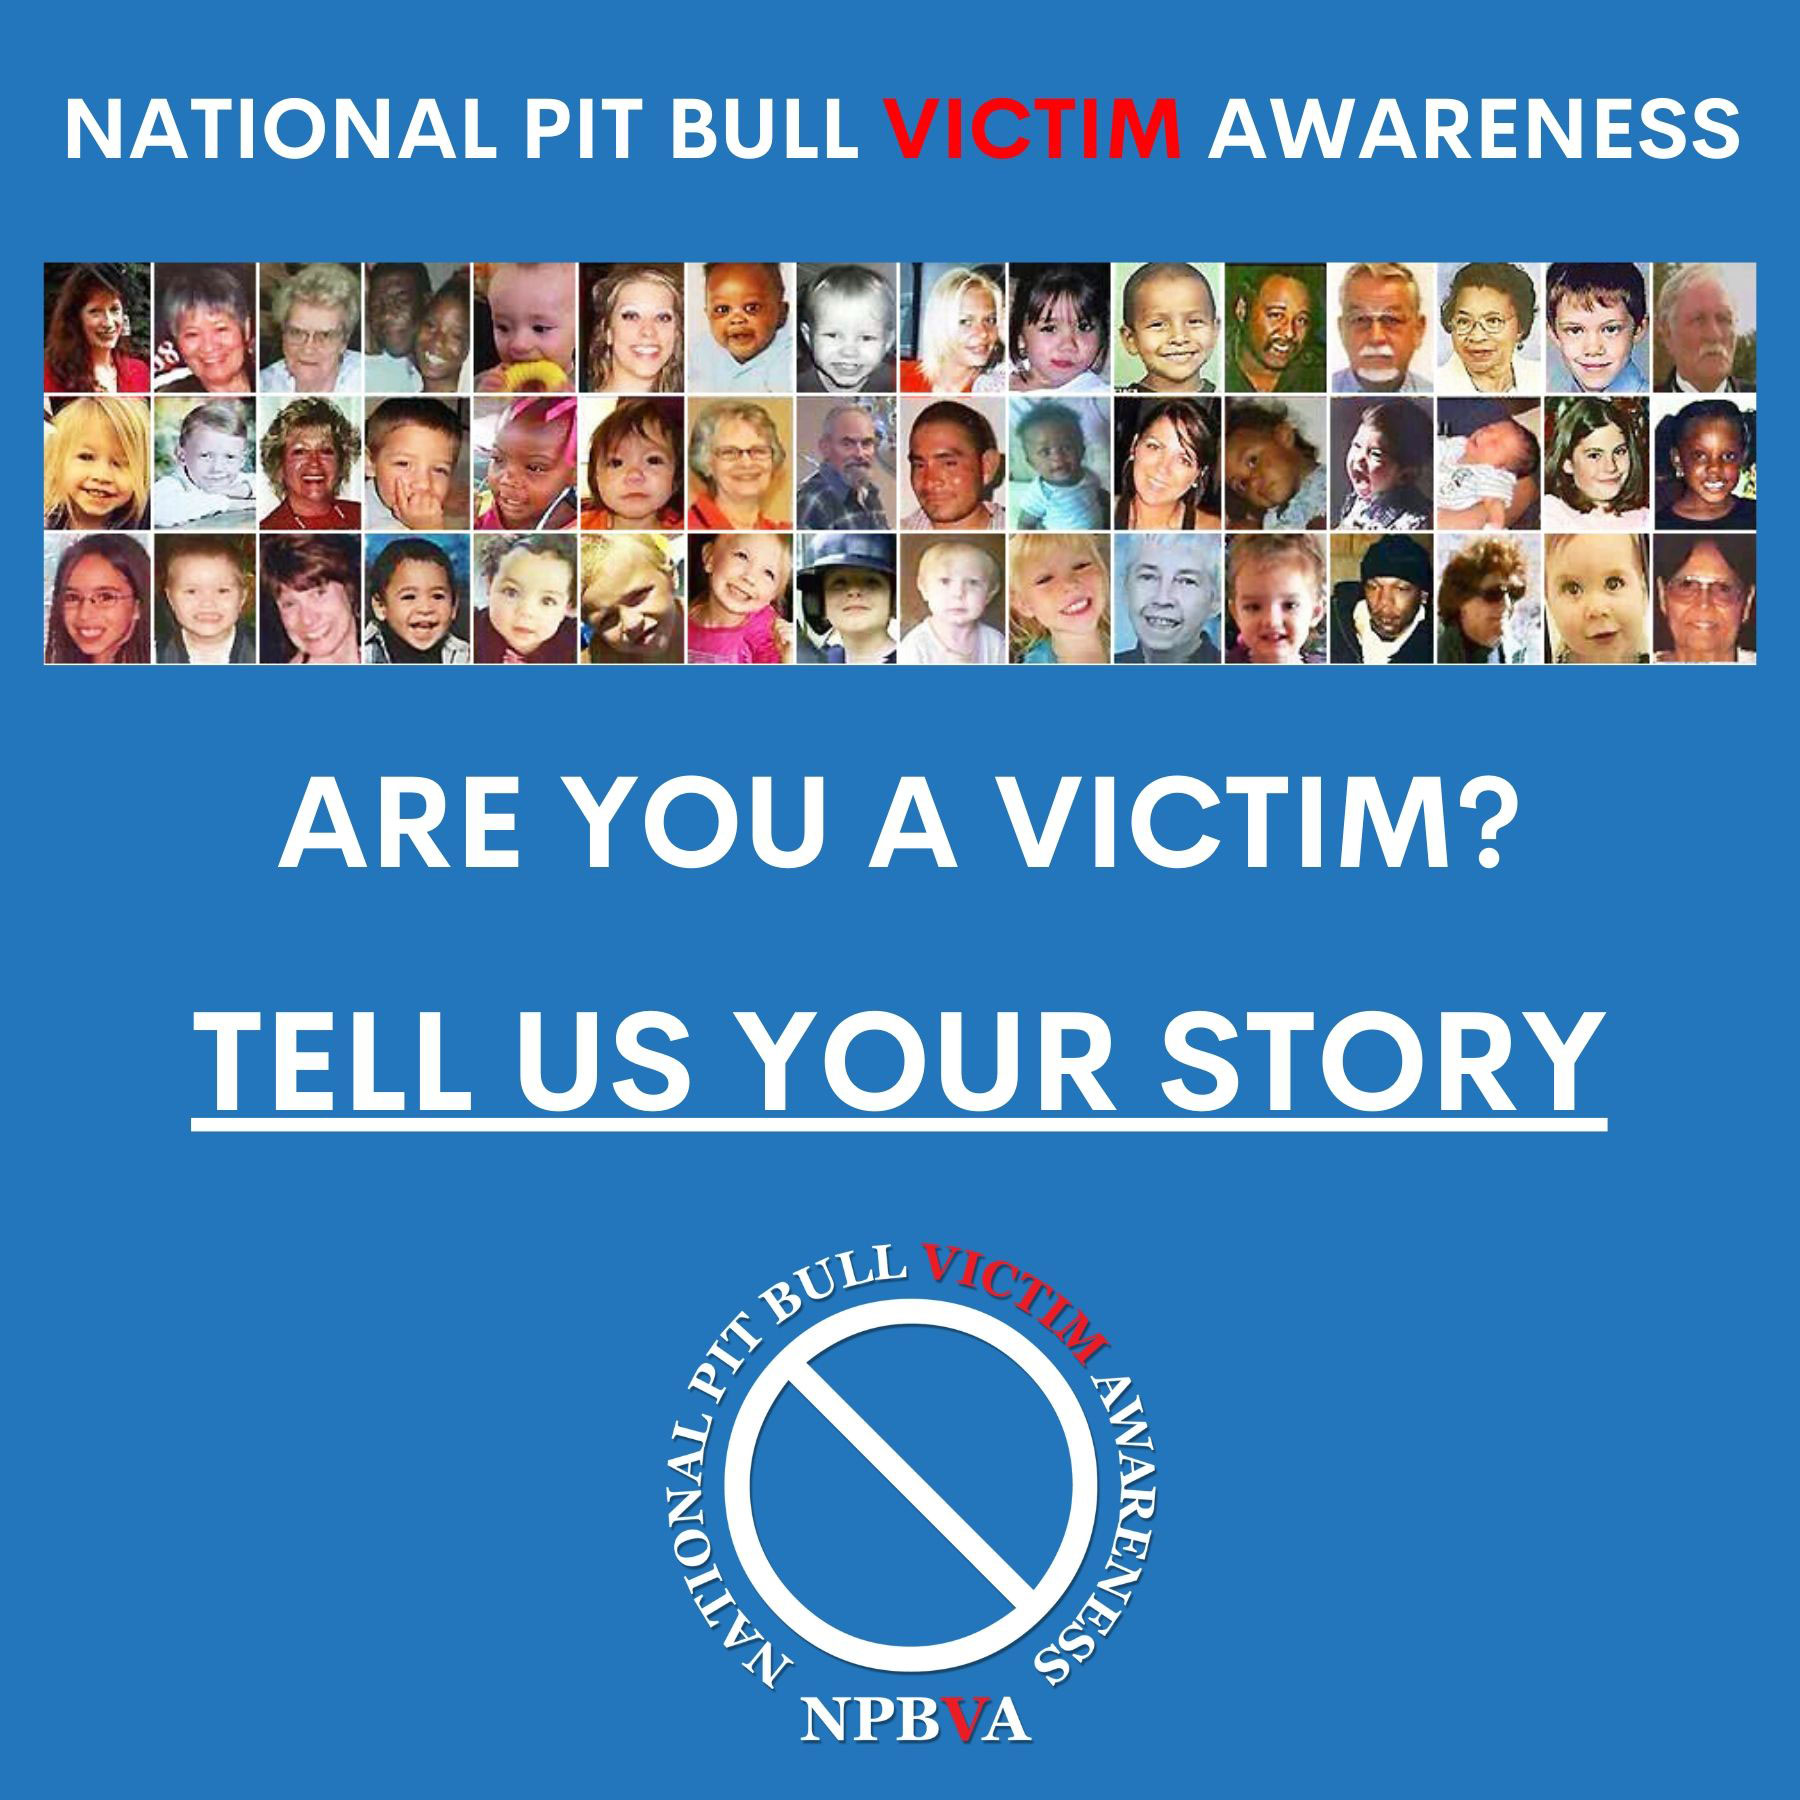 If you are a victim of pit bulls, tell us your story